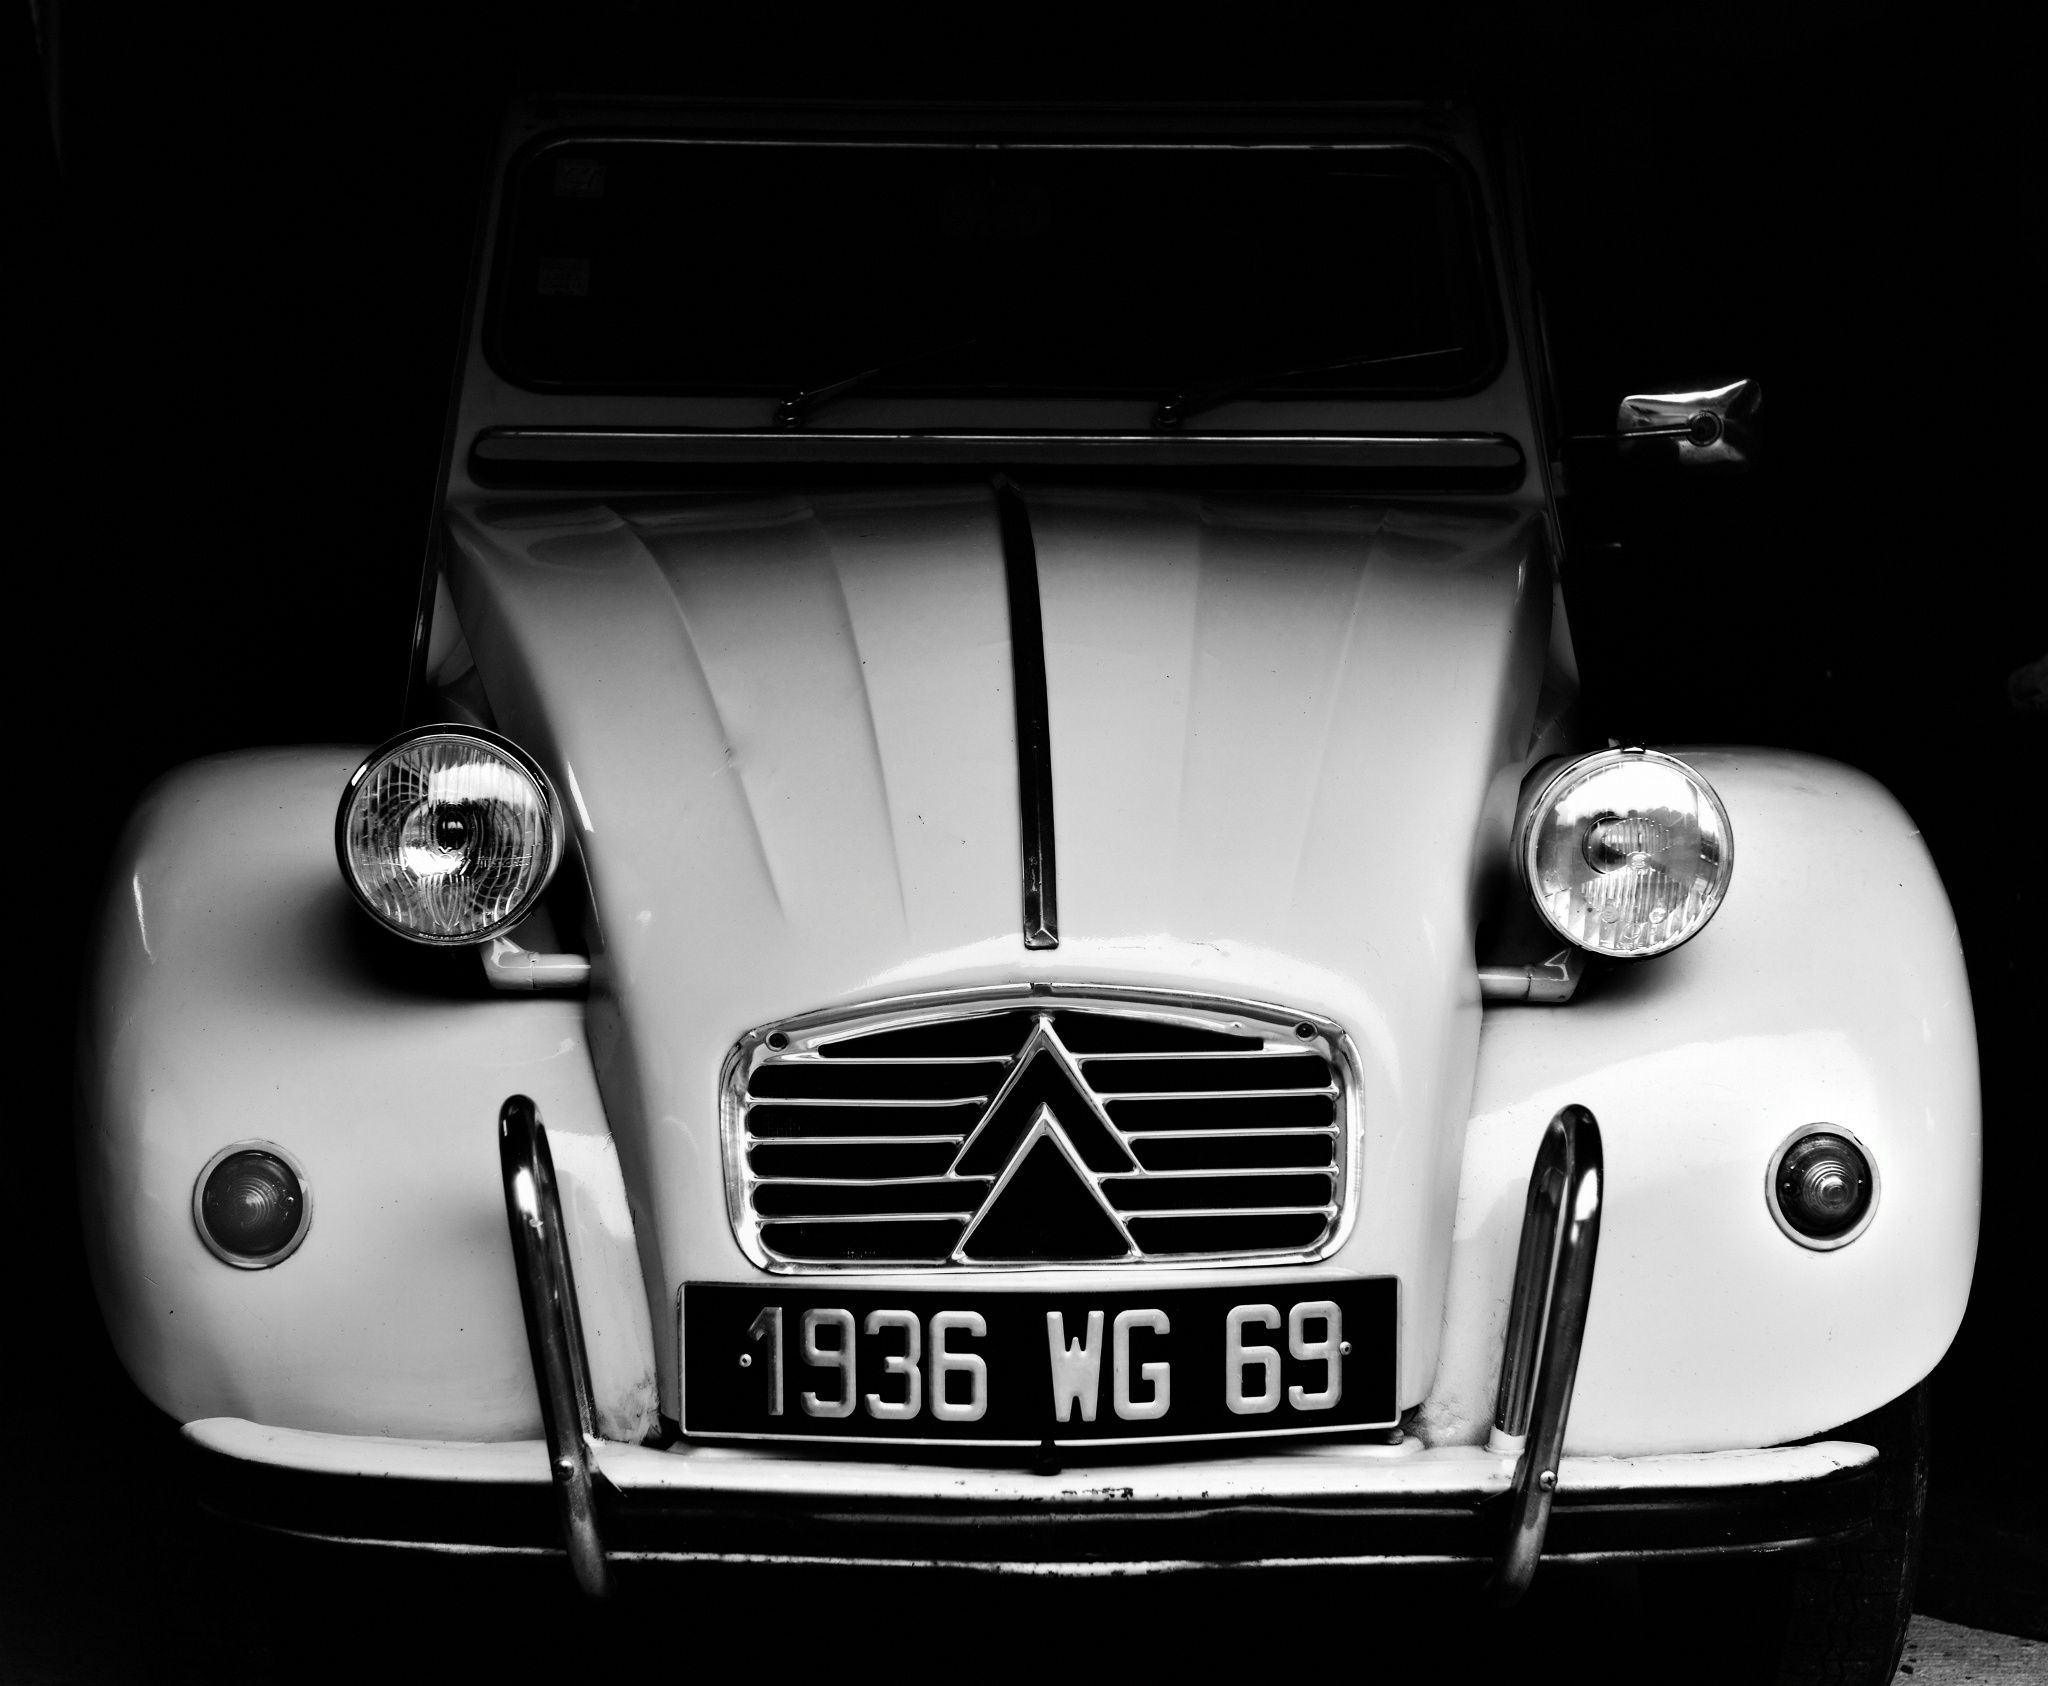 2cv by Gilles Vaillant on 500px